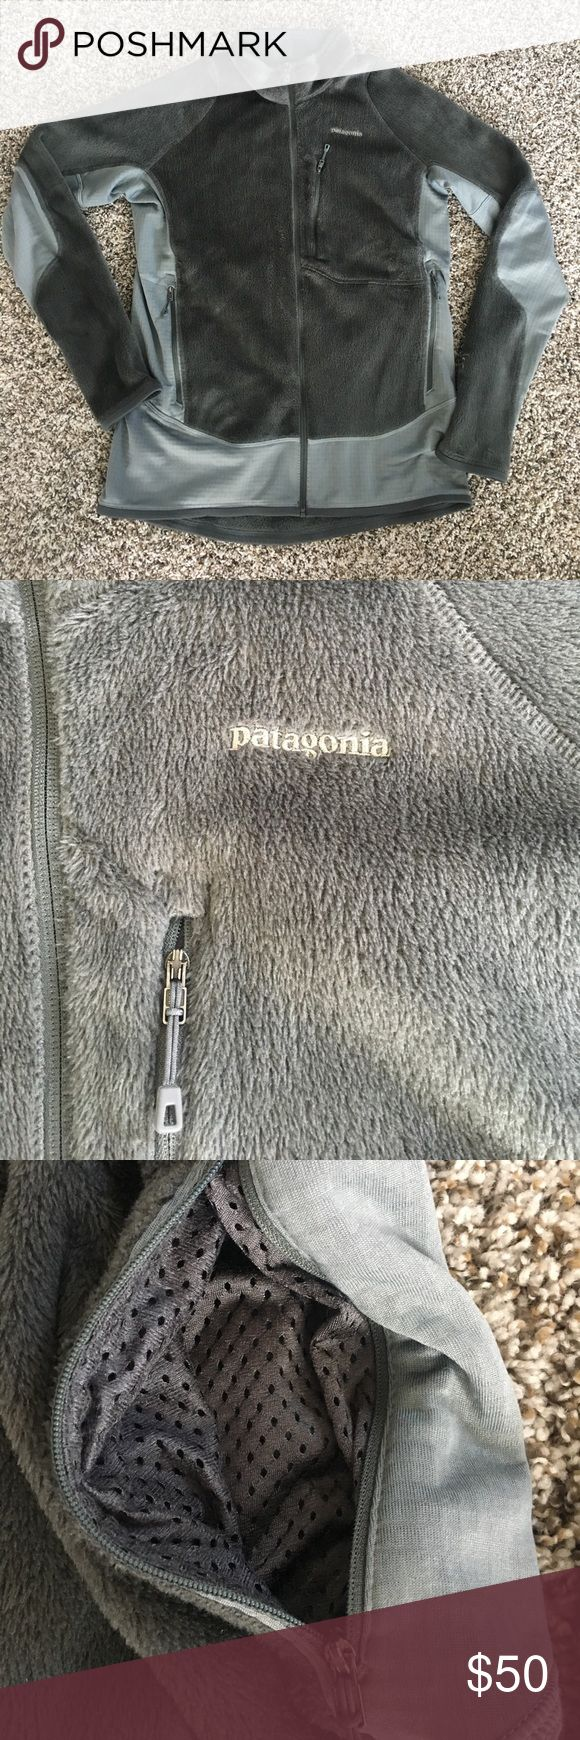 Men's Patagonia Grey Jacket L Men's Patagonia Grey Jacket Size L. Like New. Polar Tech fabric. Pockets and thumb holes. Great condition. Patagonia Jackets & Coats Performance Jackets